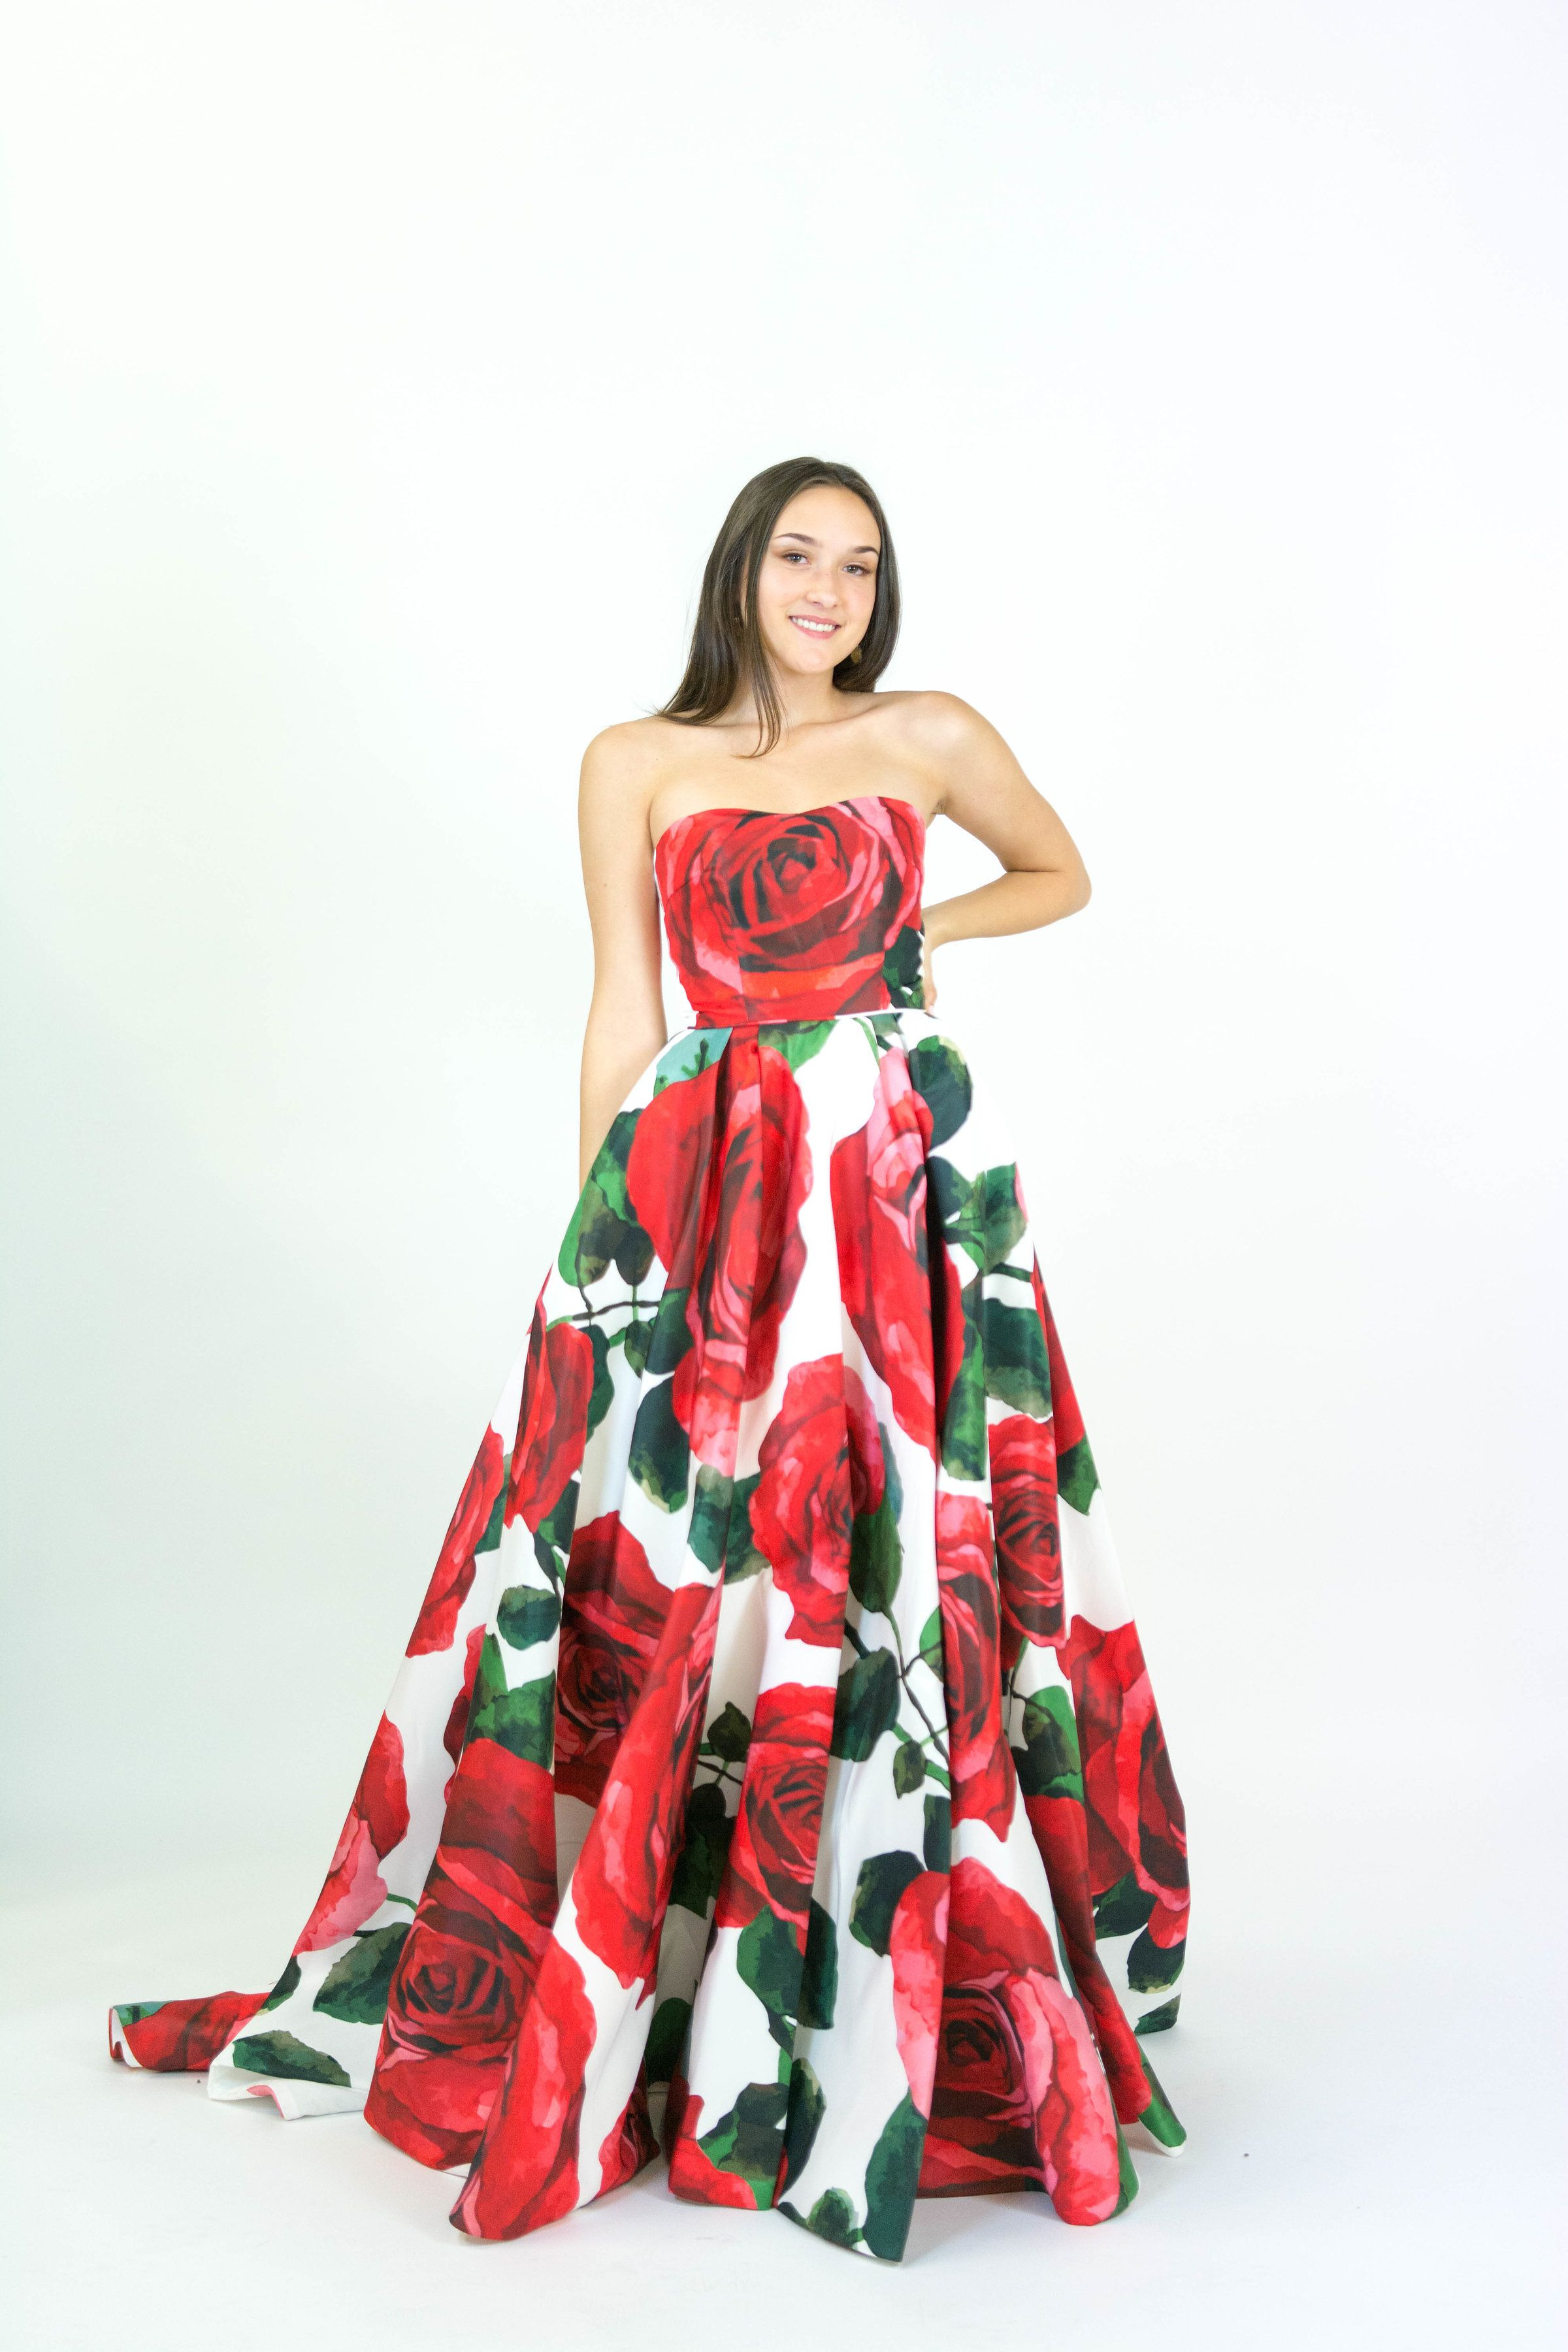 1ab4ced6f6a Sherri Hill Spring 2018 Collection Giant Red Rose Floral Print Ballgown  Strapless Style Ypsilon Dresses Pageant Prom Evening Gown Runway Formal  Special ...